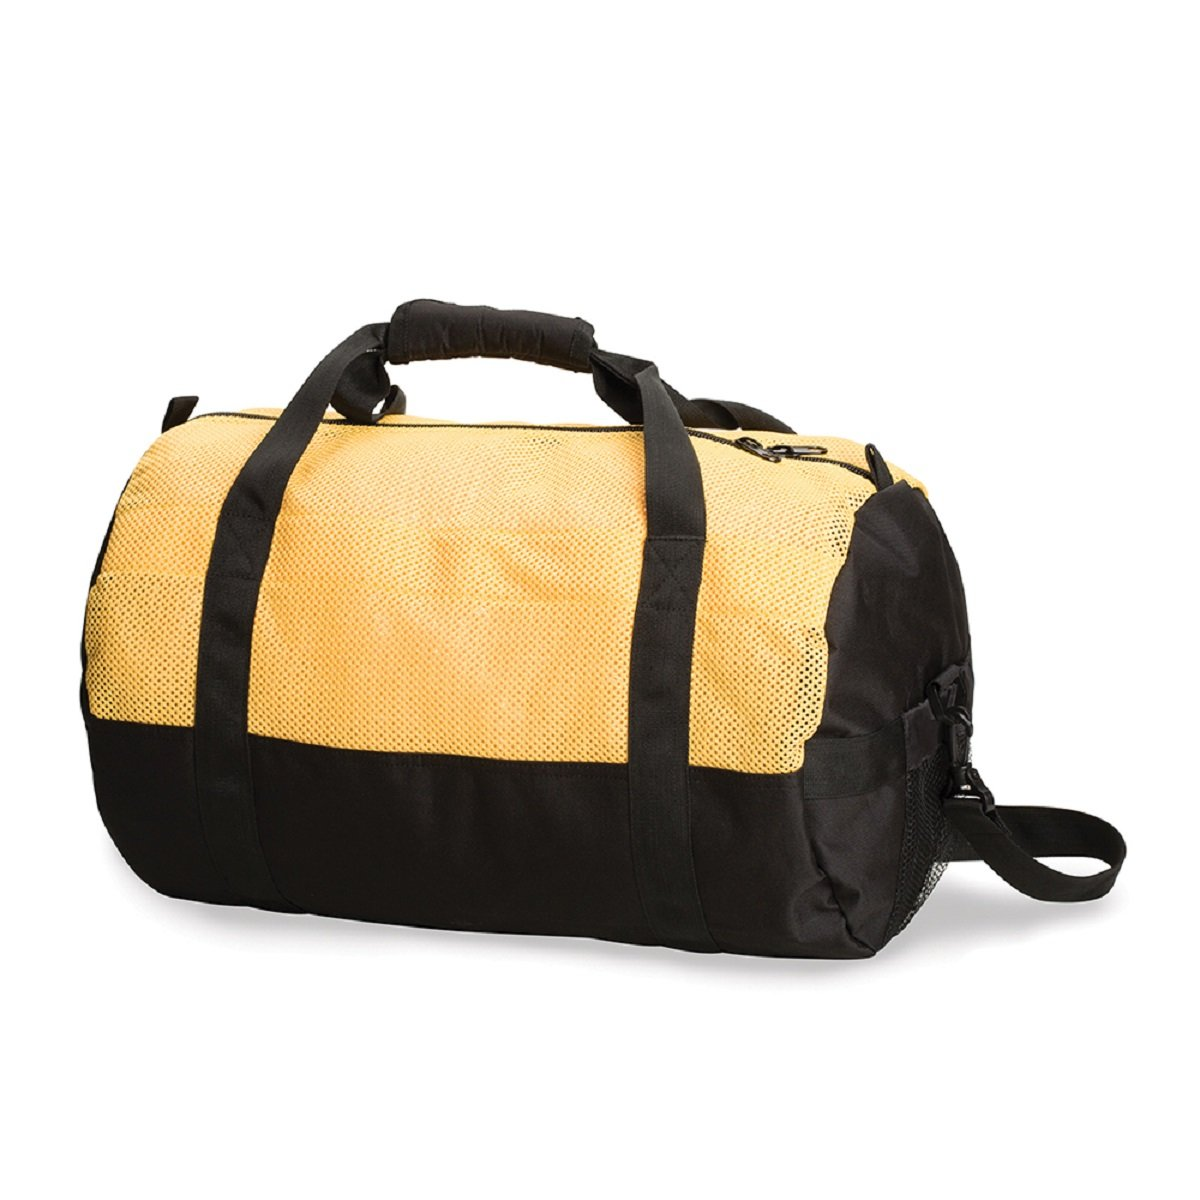 STANSPORT MESH TOP ROLL BAG - 12 IN X 20 IN - YELLOW/BLACK, Case of 12